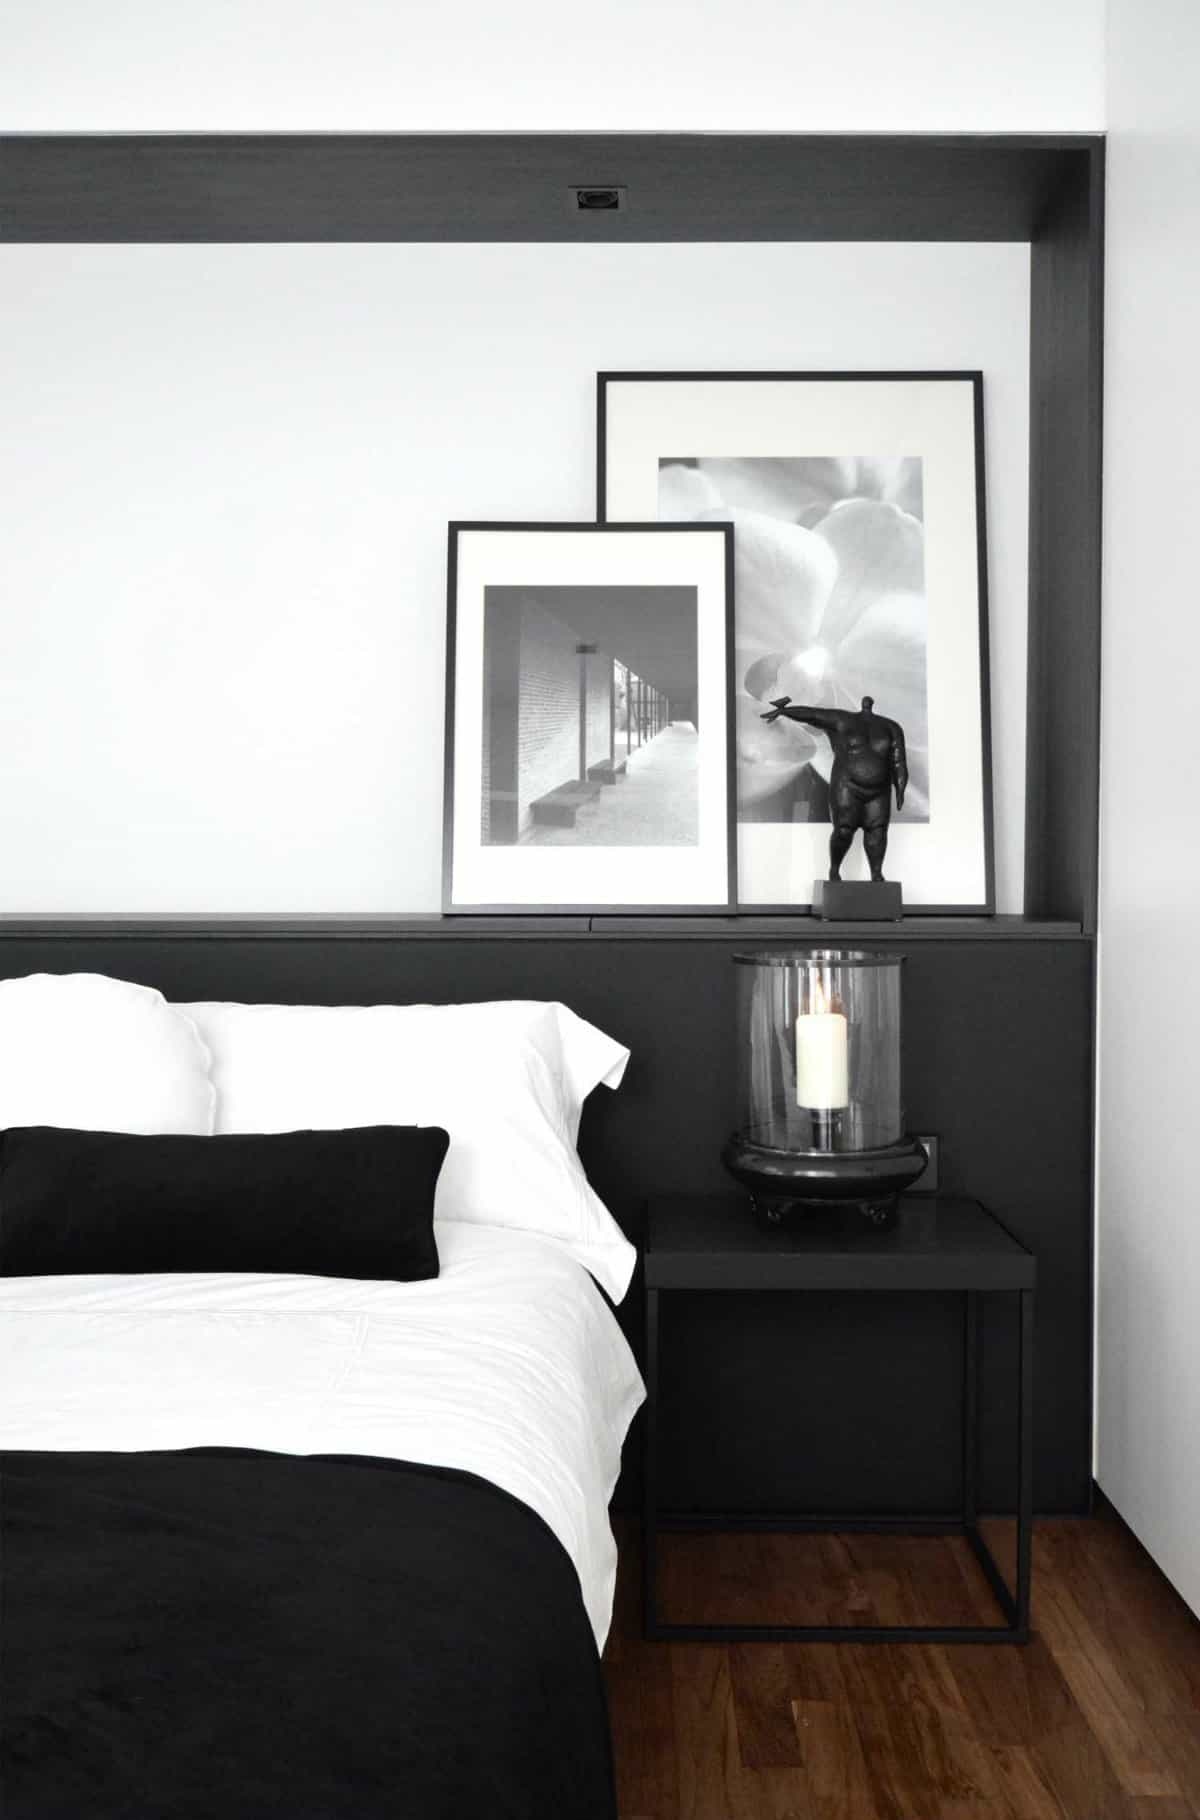 Minimalist bedroom inspiration my style vita for Minimalist room ideas